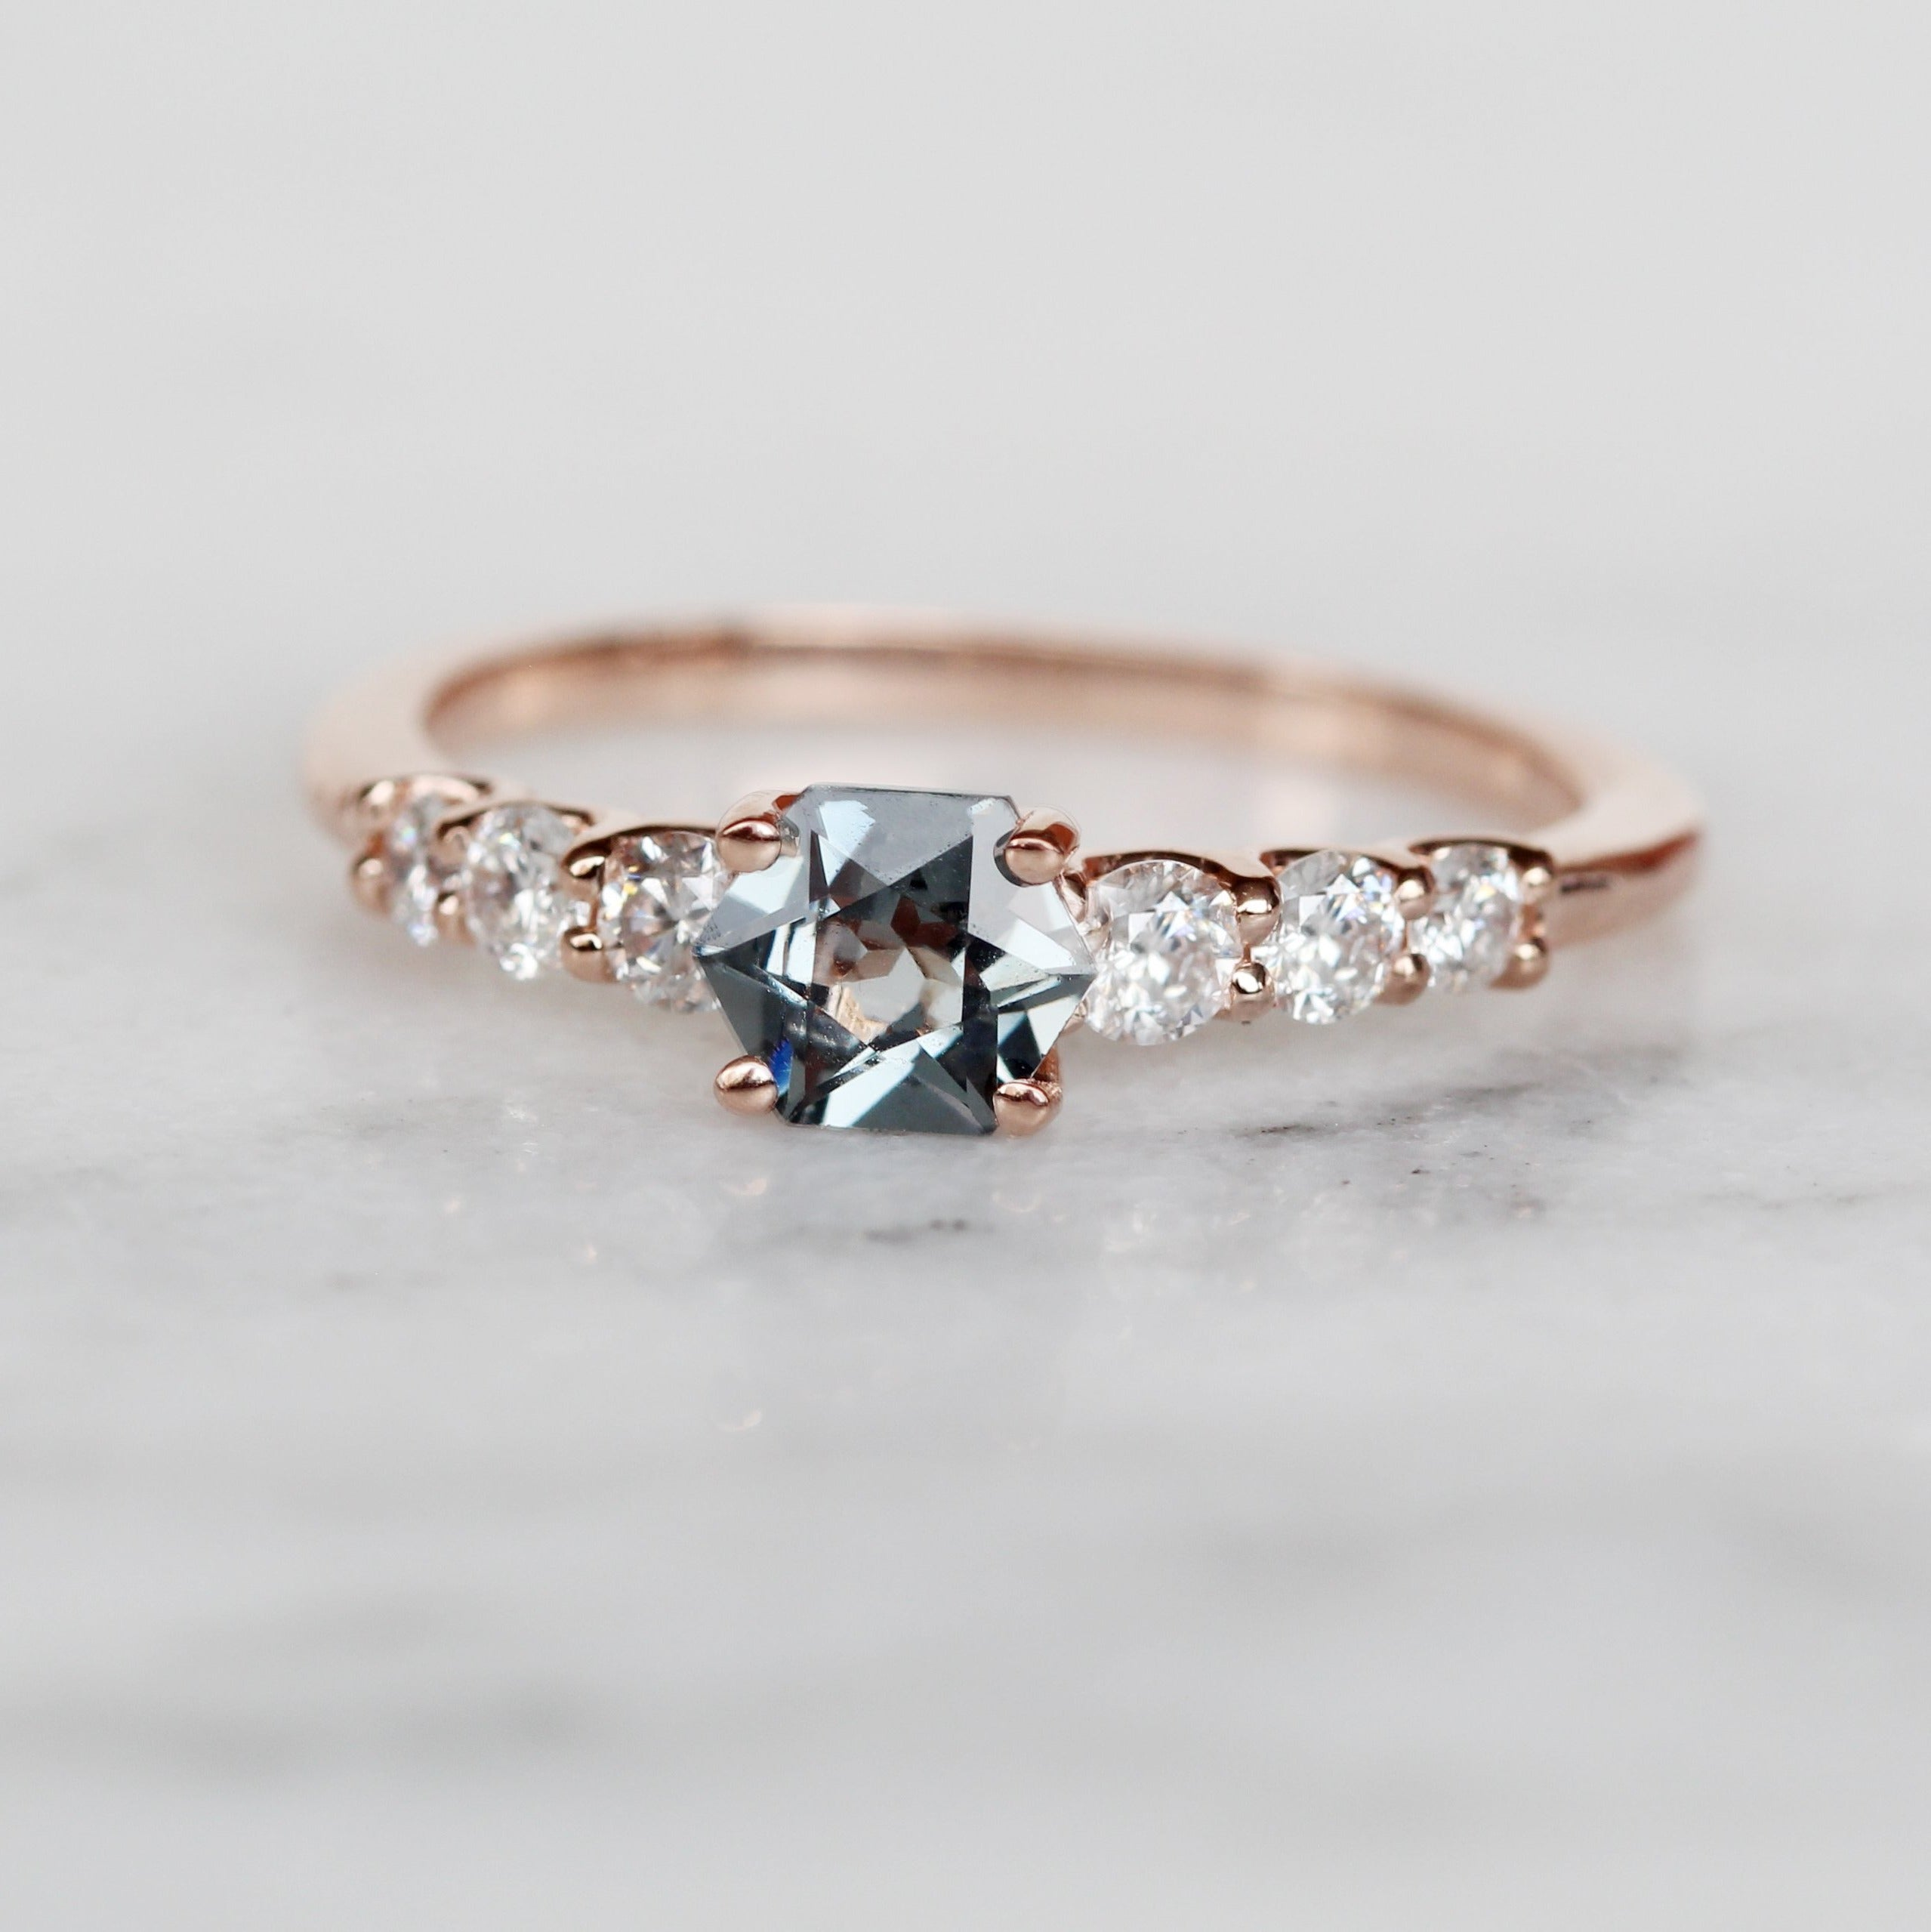 Nina ring with .64 carat hexagon spinel and diamonds in 10k rose gold - ready to size and ship - Salt & Pepper Celestial Diamond Engagement Rings and Wedding Bands  by Midwinter Co.